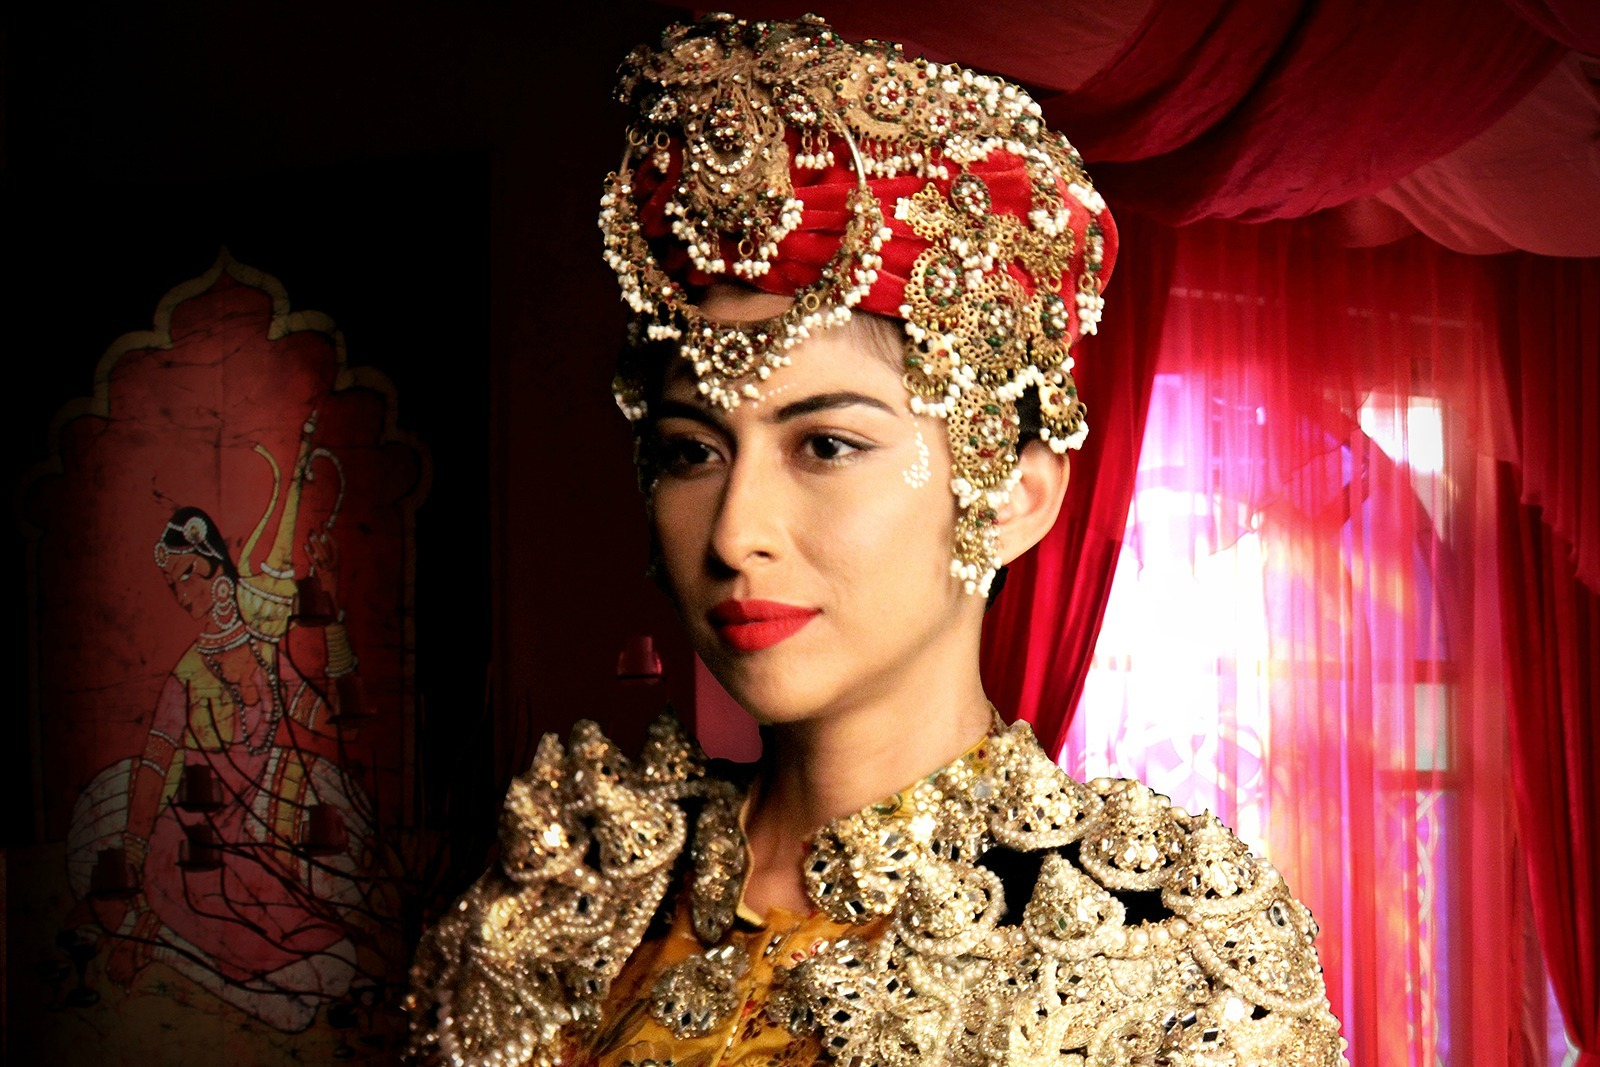 Meesha Shafi's headgear was encrusted with jewellery for a festive in Mor Mahal